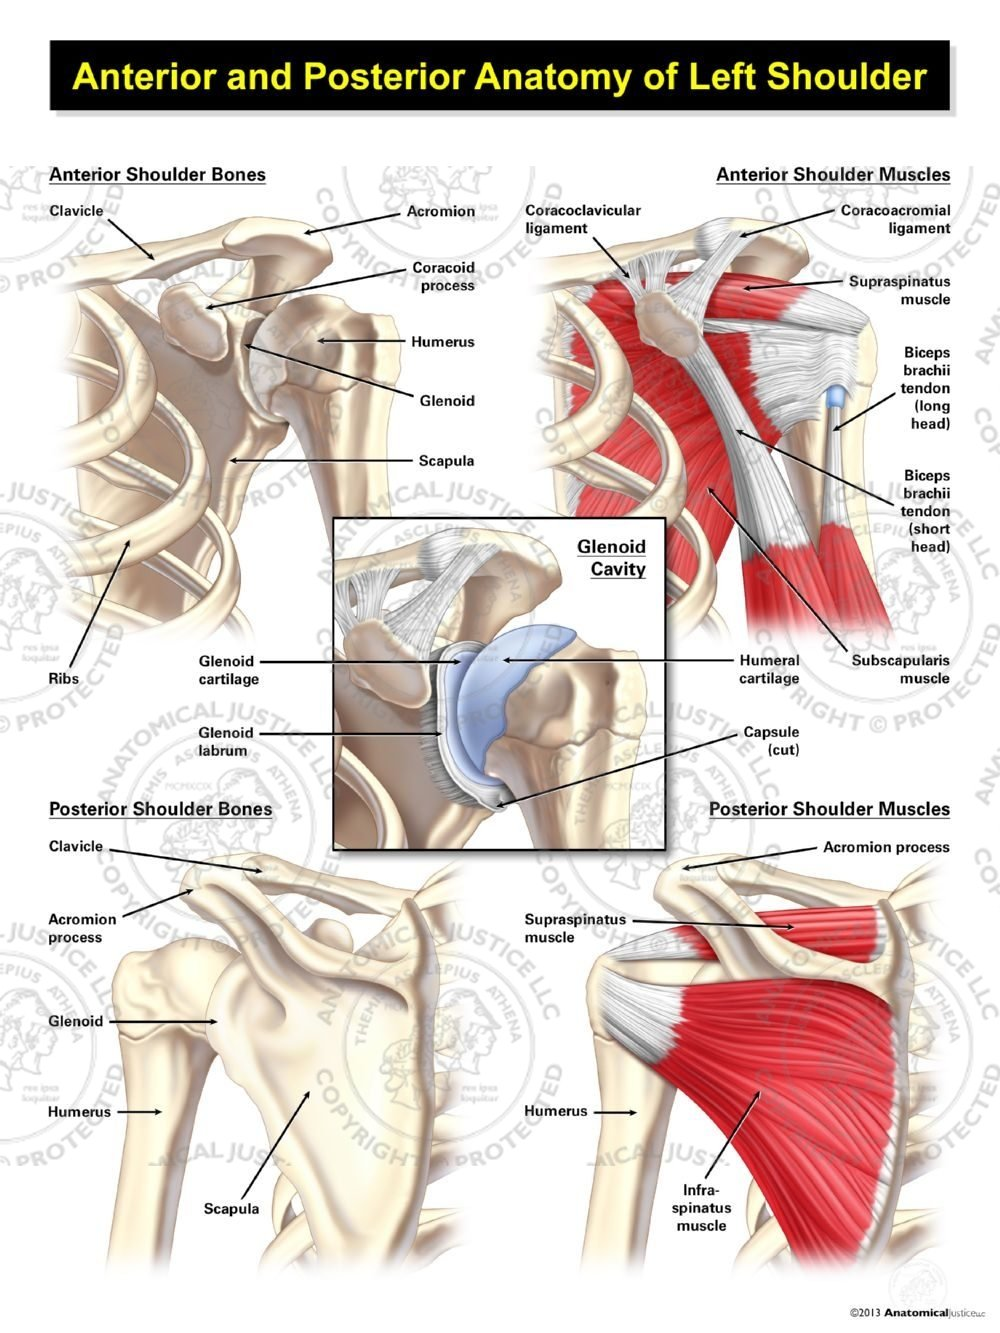 Anterior And Posterior Anatomy Of The Left Shoulder Anatomical Justice